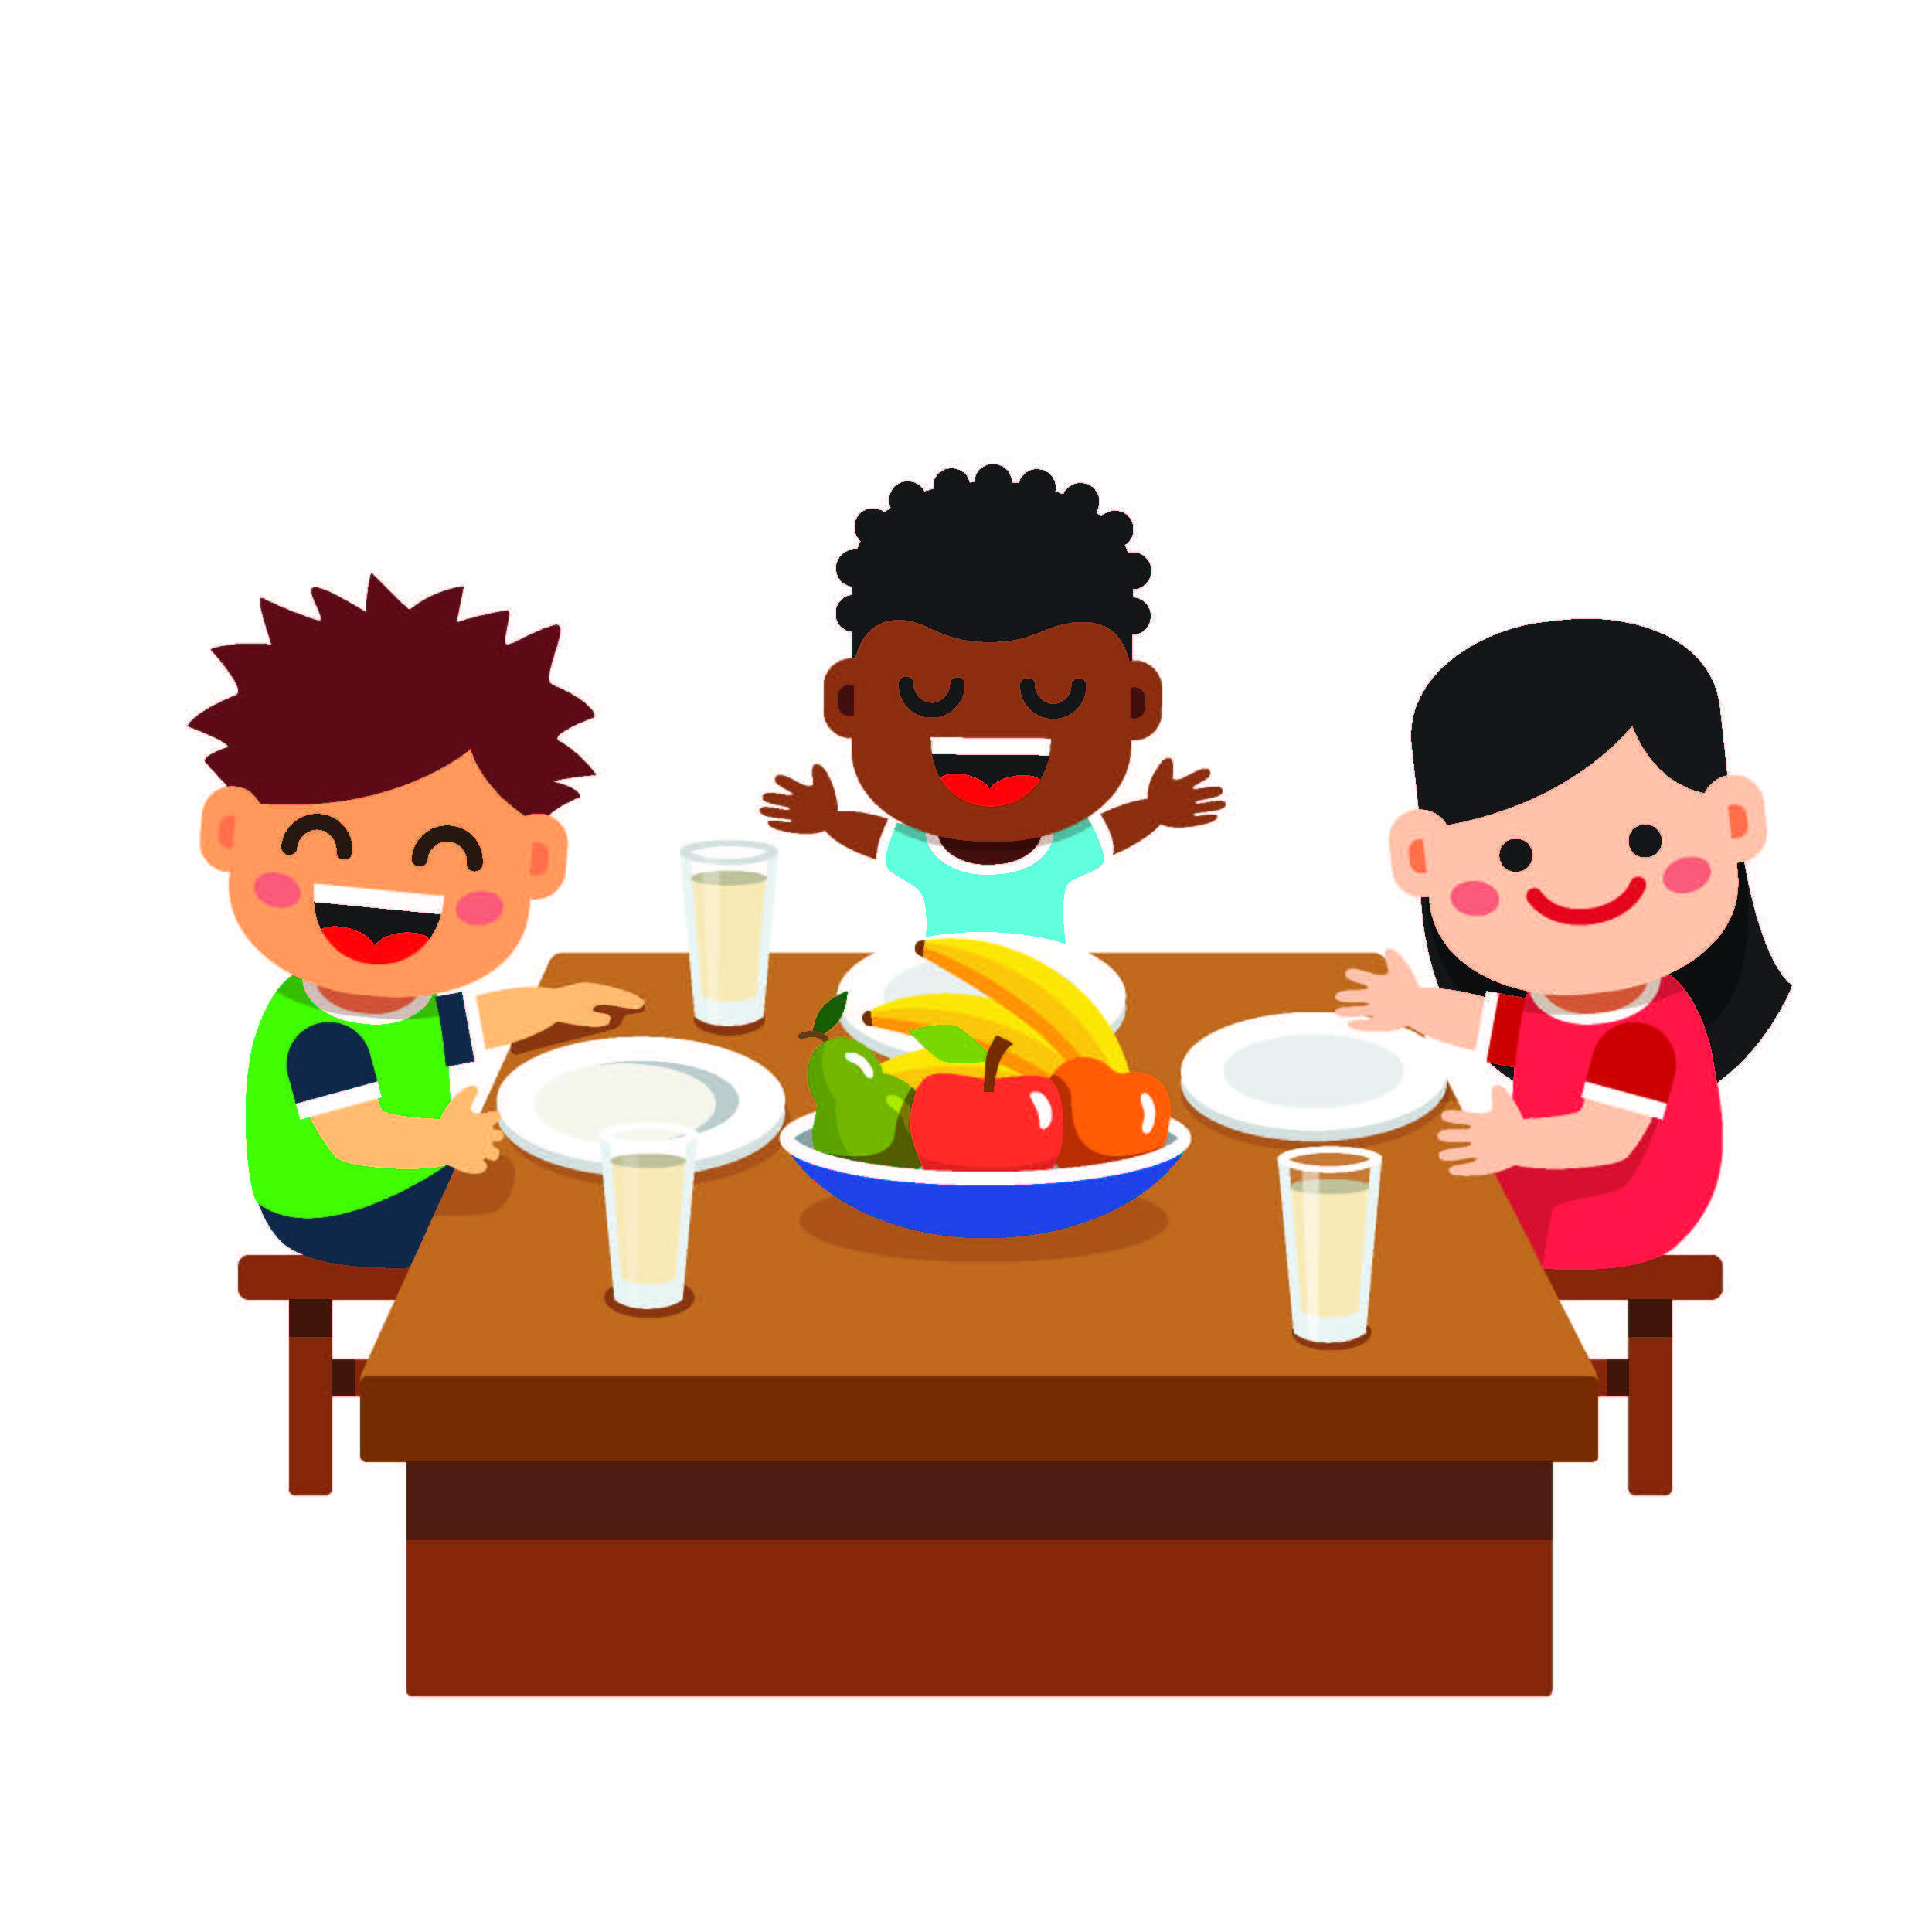 illustration of kids eating healthy food at a table